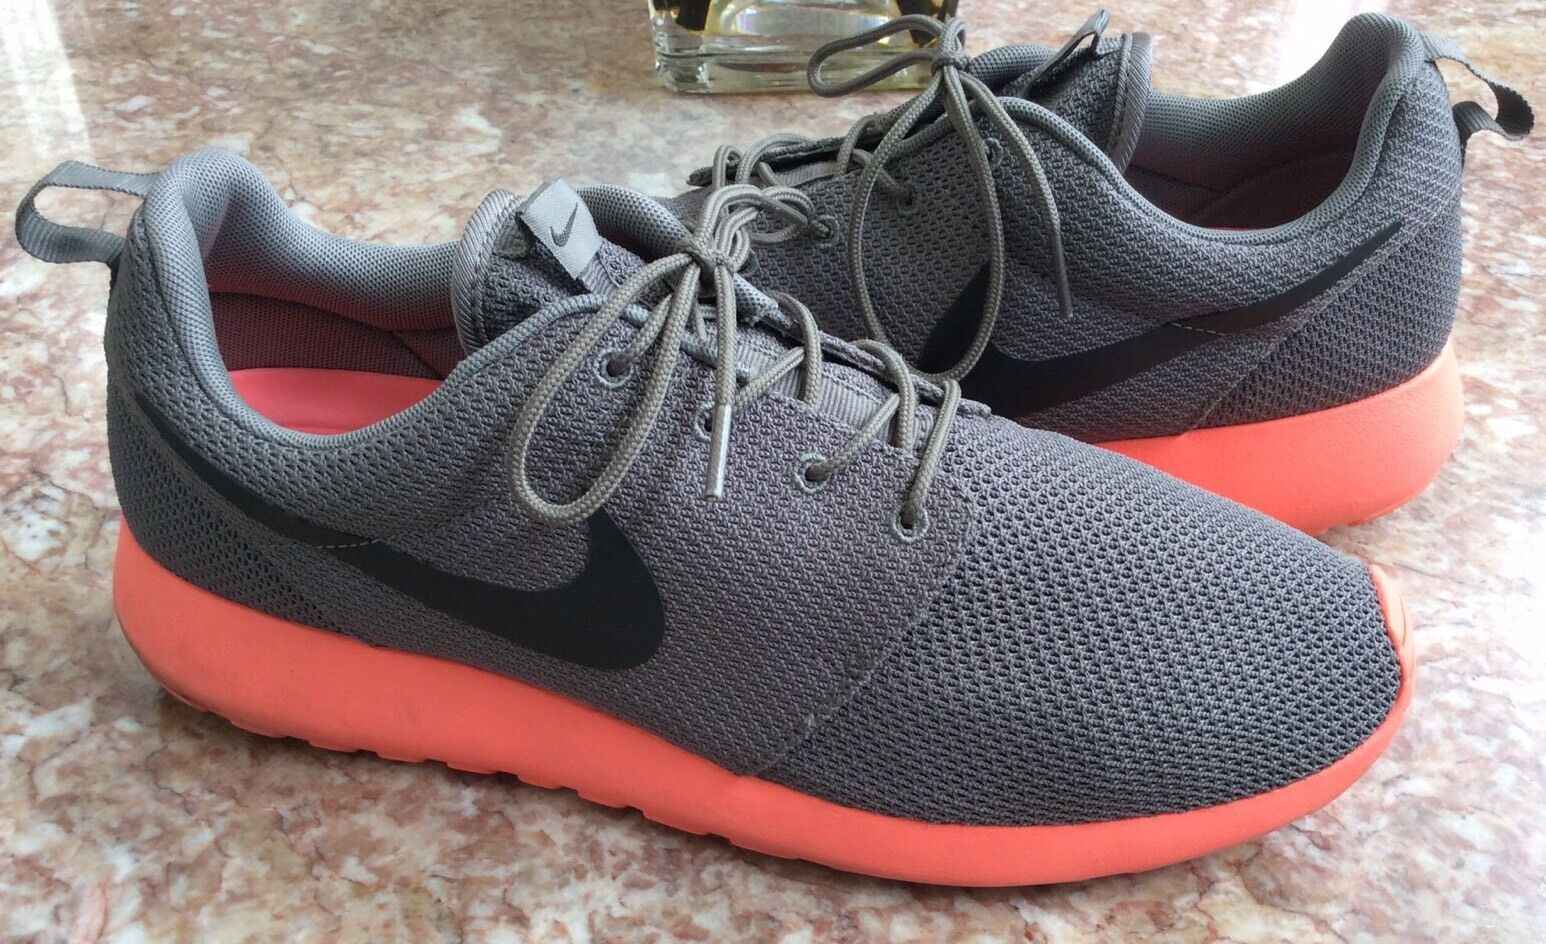 NIKE Rosherun Men's Gray Crimson Running Training Shoes Size 11 EUC!